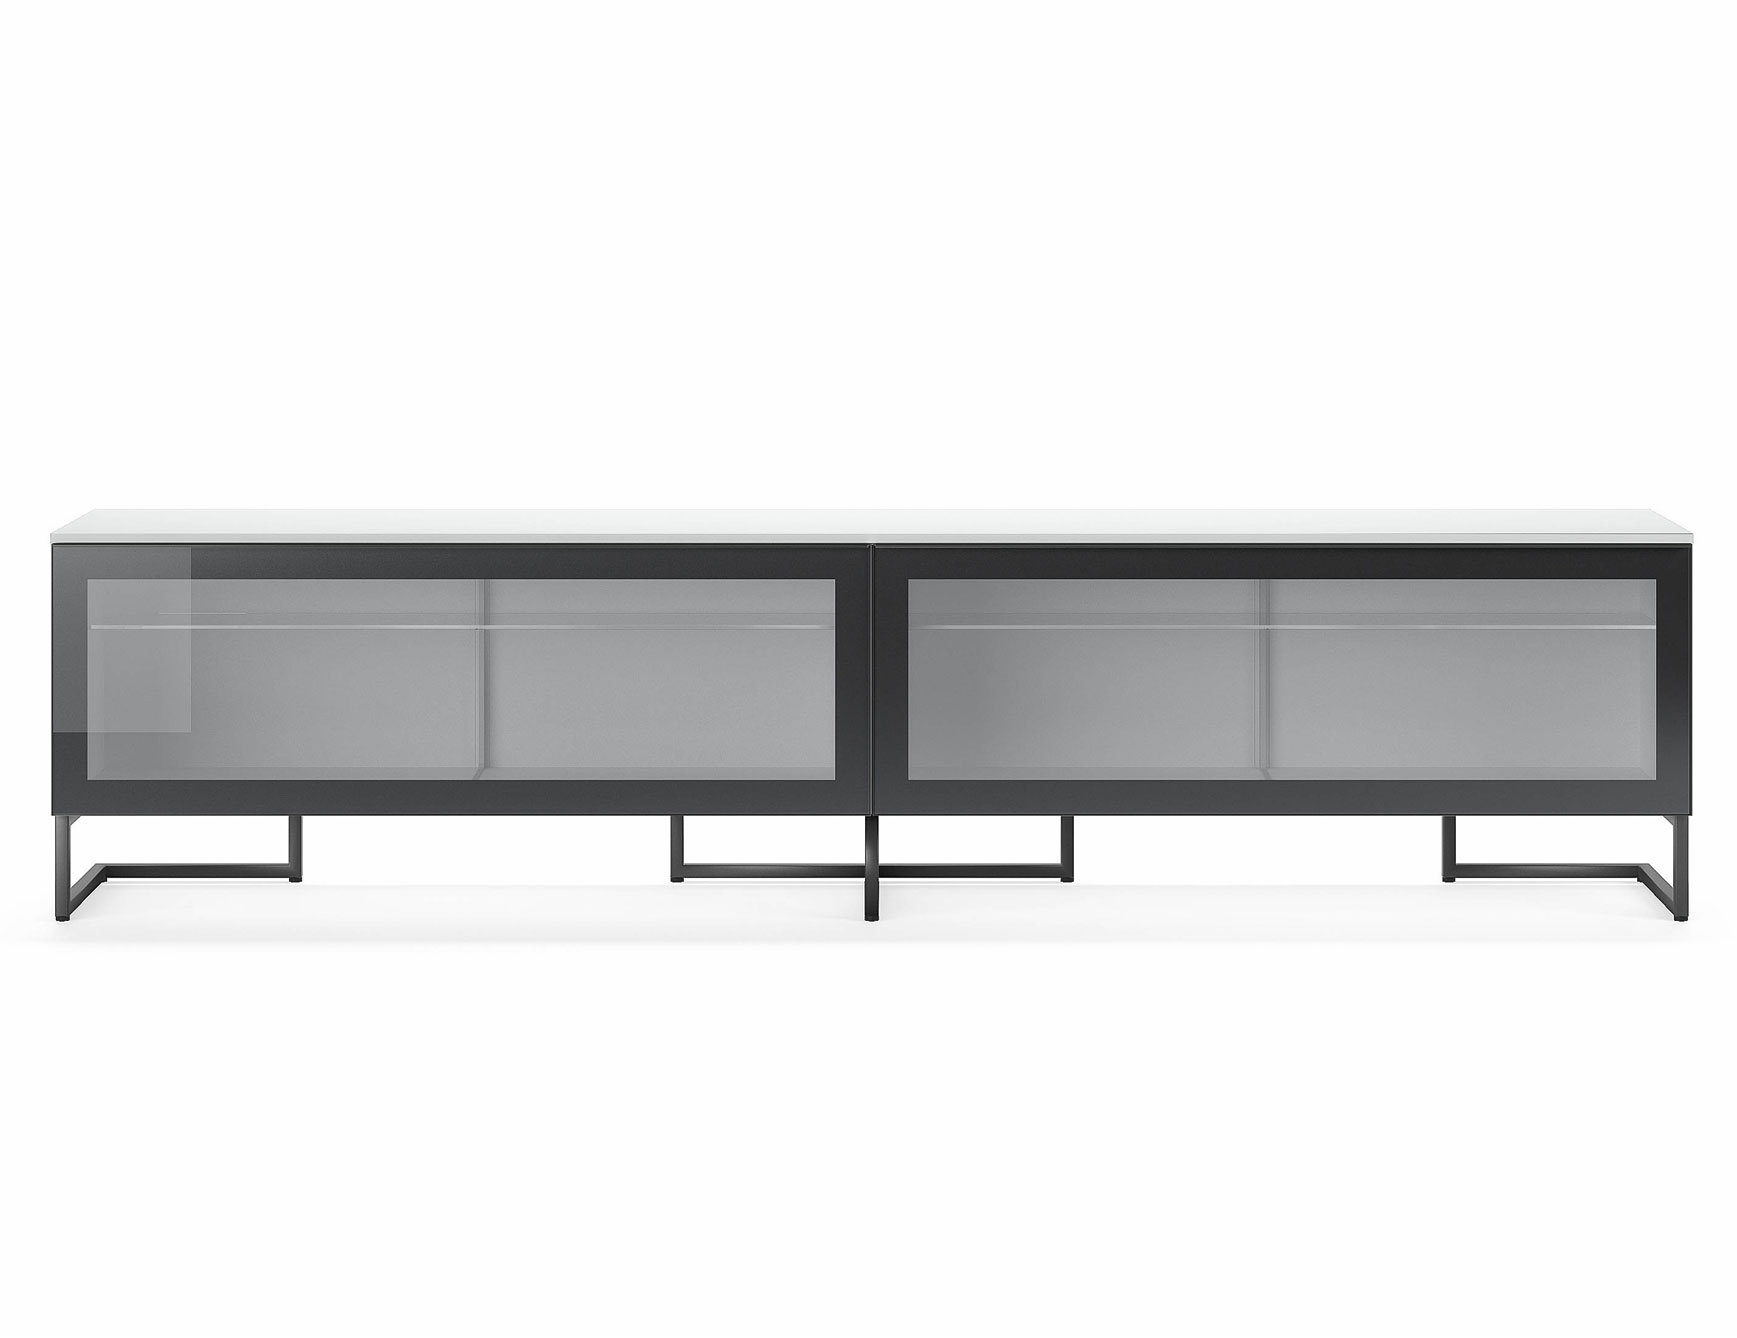 Nella Vetrina Pianca Spazio Sgm240 Contemporary Italian Tv Unit In Throughout Black Burnt Oak Sideboards (Photo 15 of 30)